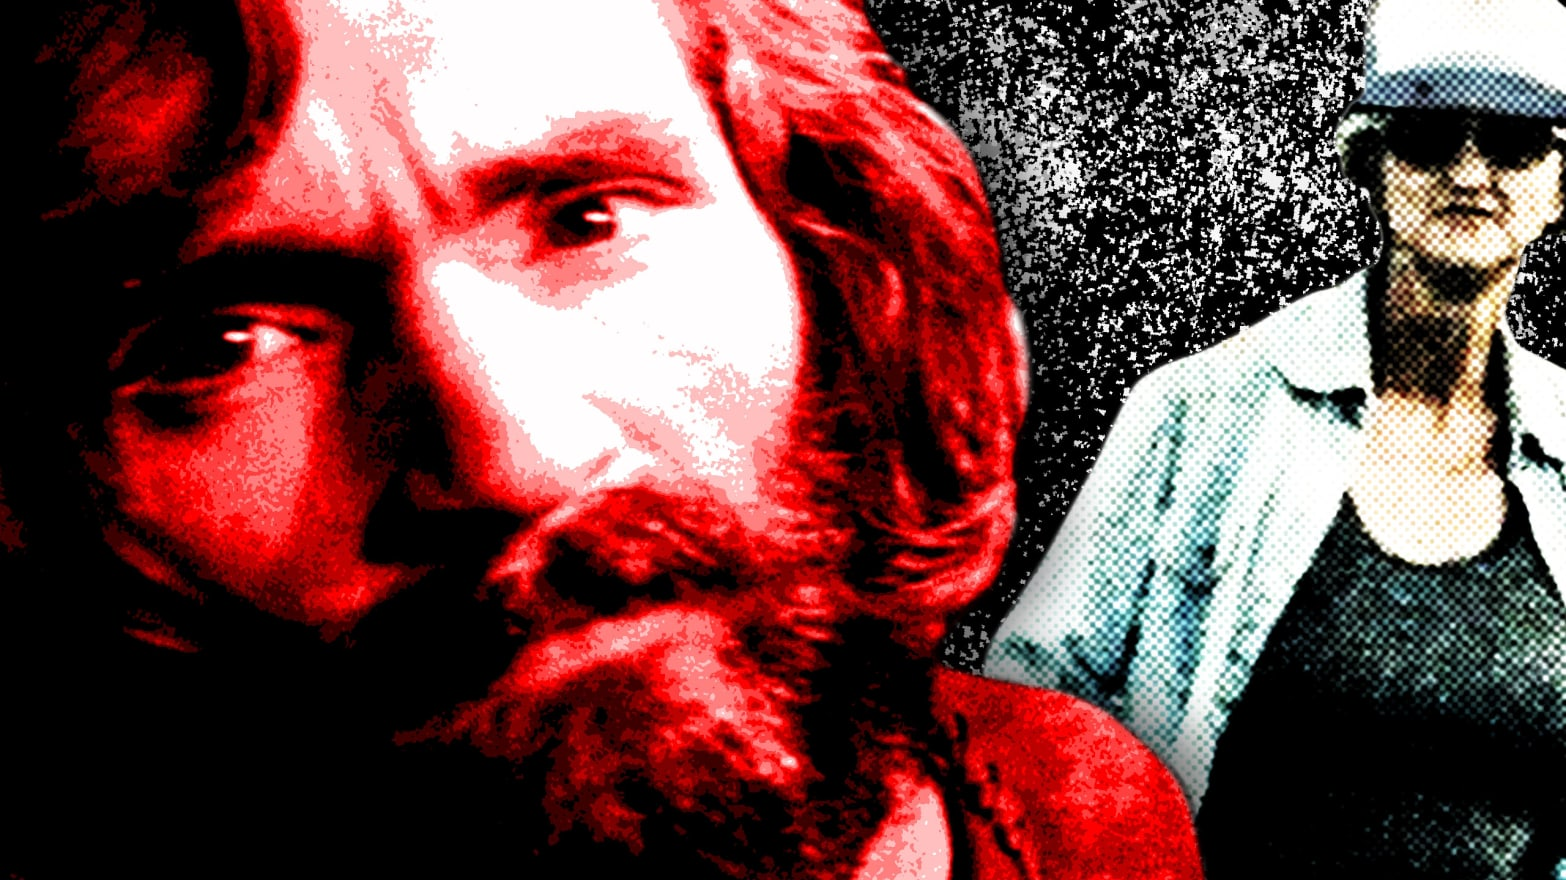 She Almost Killed Charles Manson